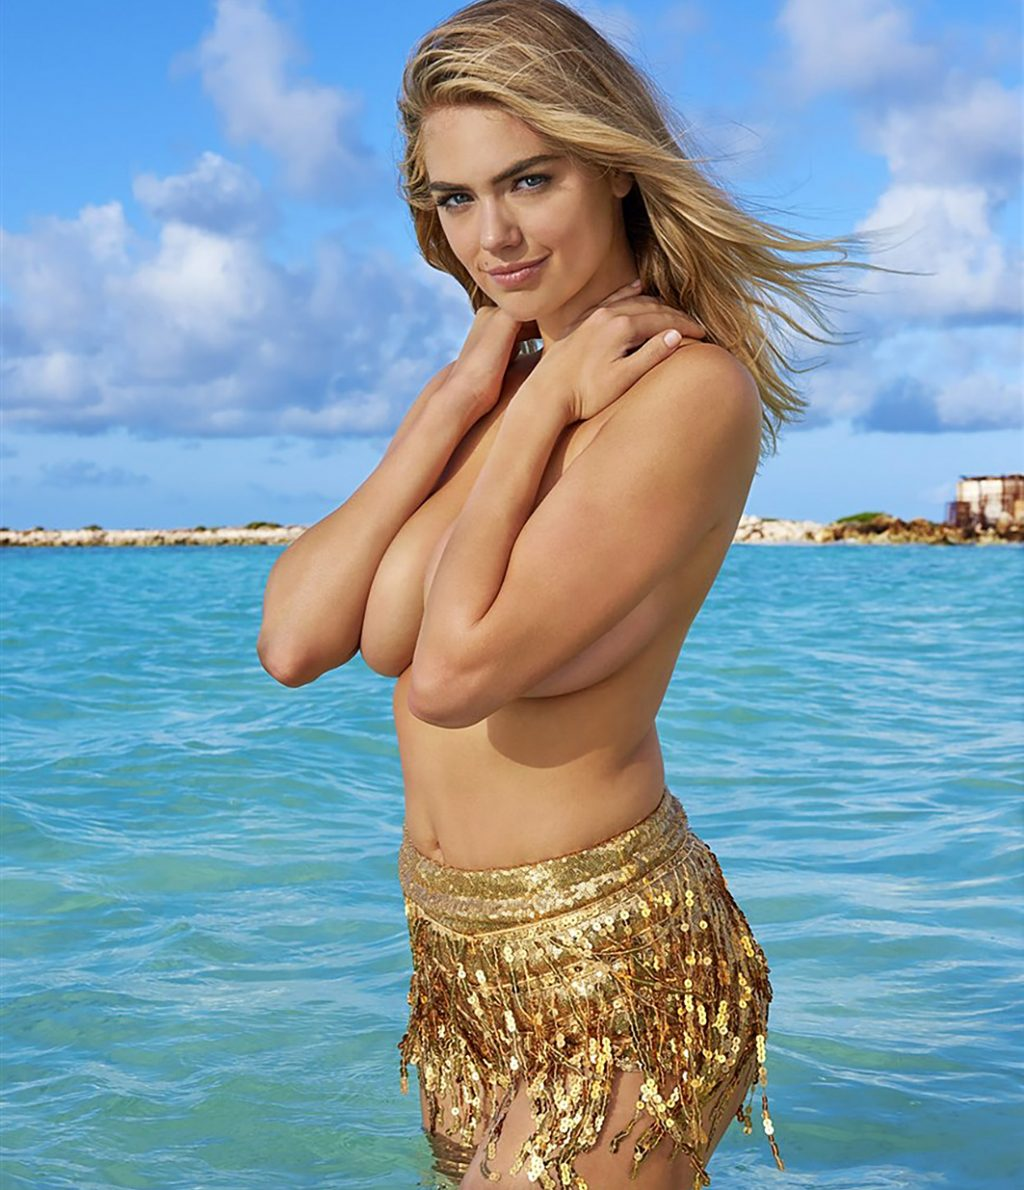 kate upton topless behind the scene of photoshoot